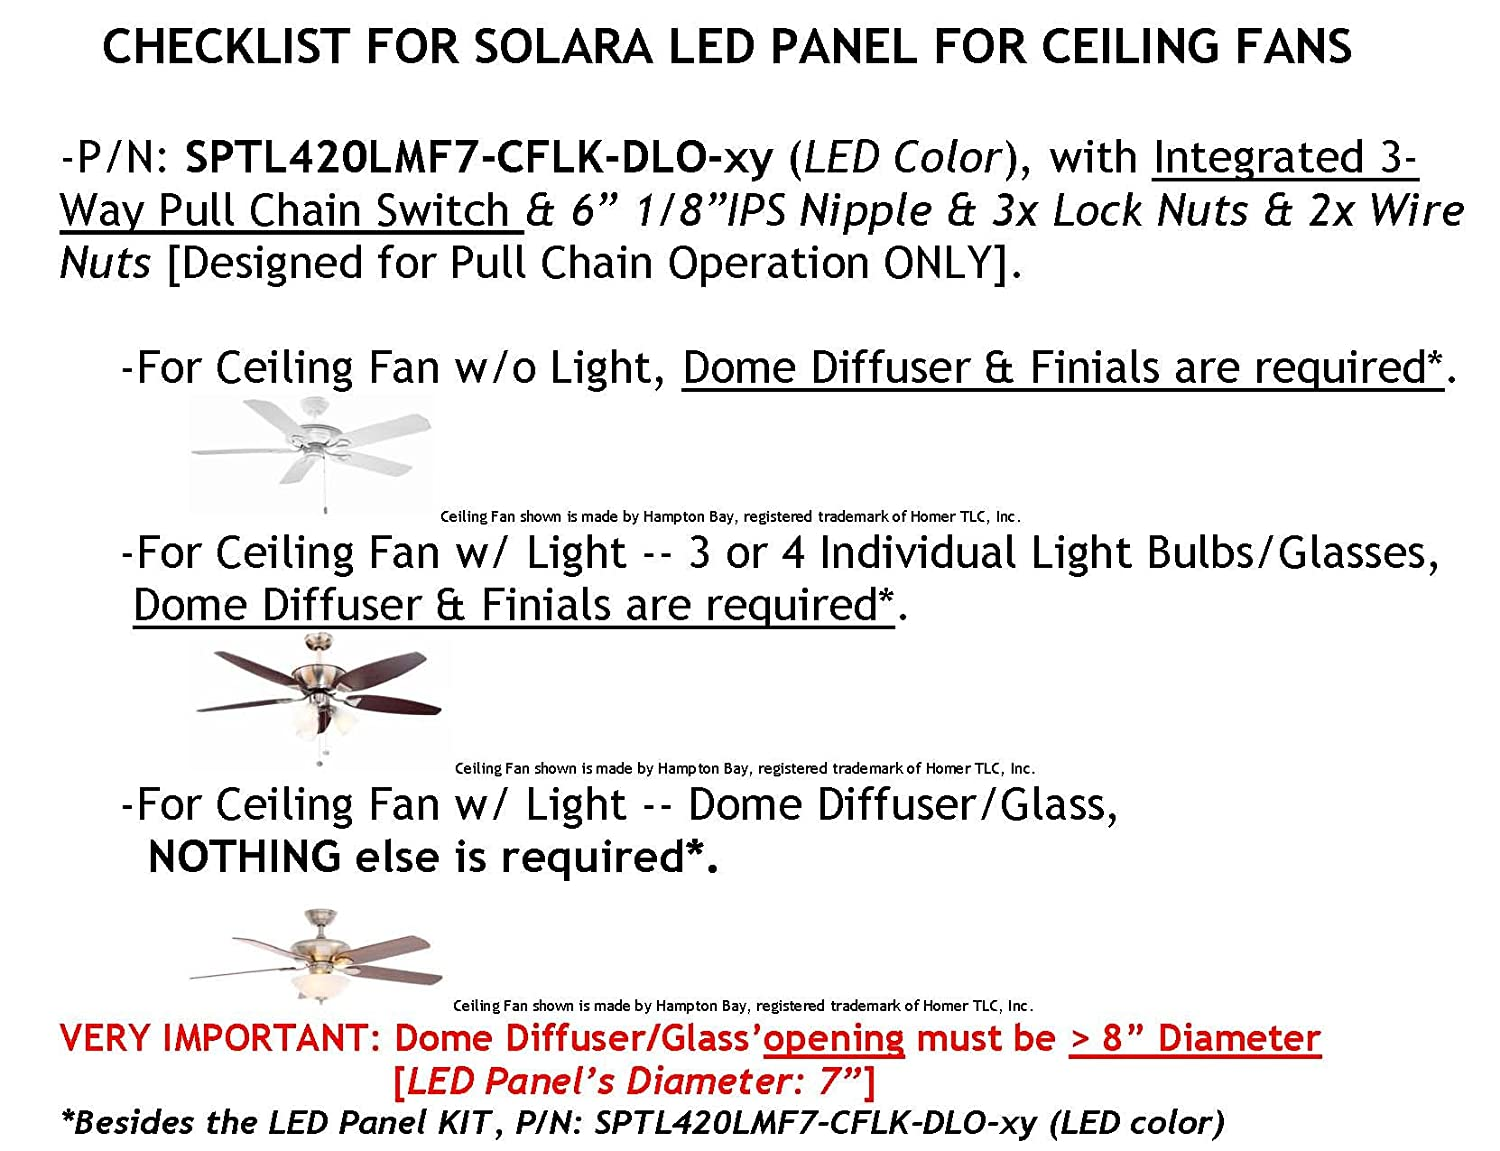 7 Dia Cool White 6000k Led Panel Kit For Ceiling Fan Light Wiring And On 3 Way Switches Double Outputs Pull Chain Switch Integrated P N Sptl420lmf7 Dlo Cflk Cw Amazon